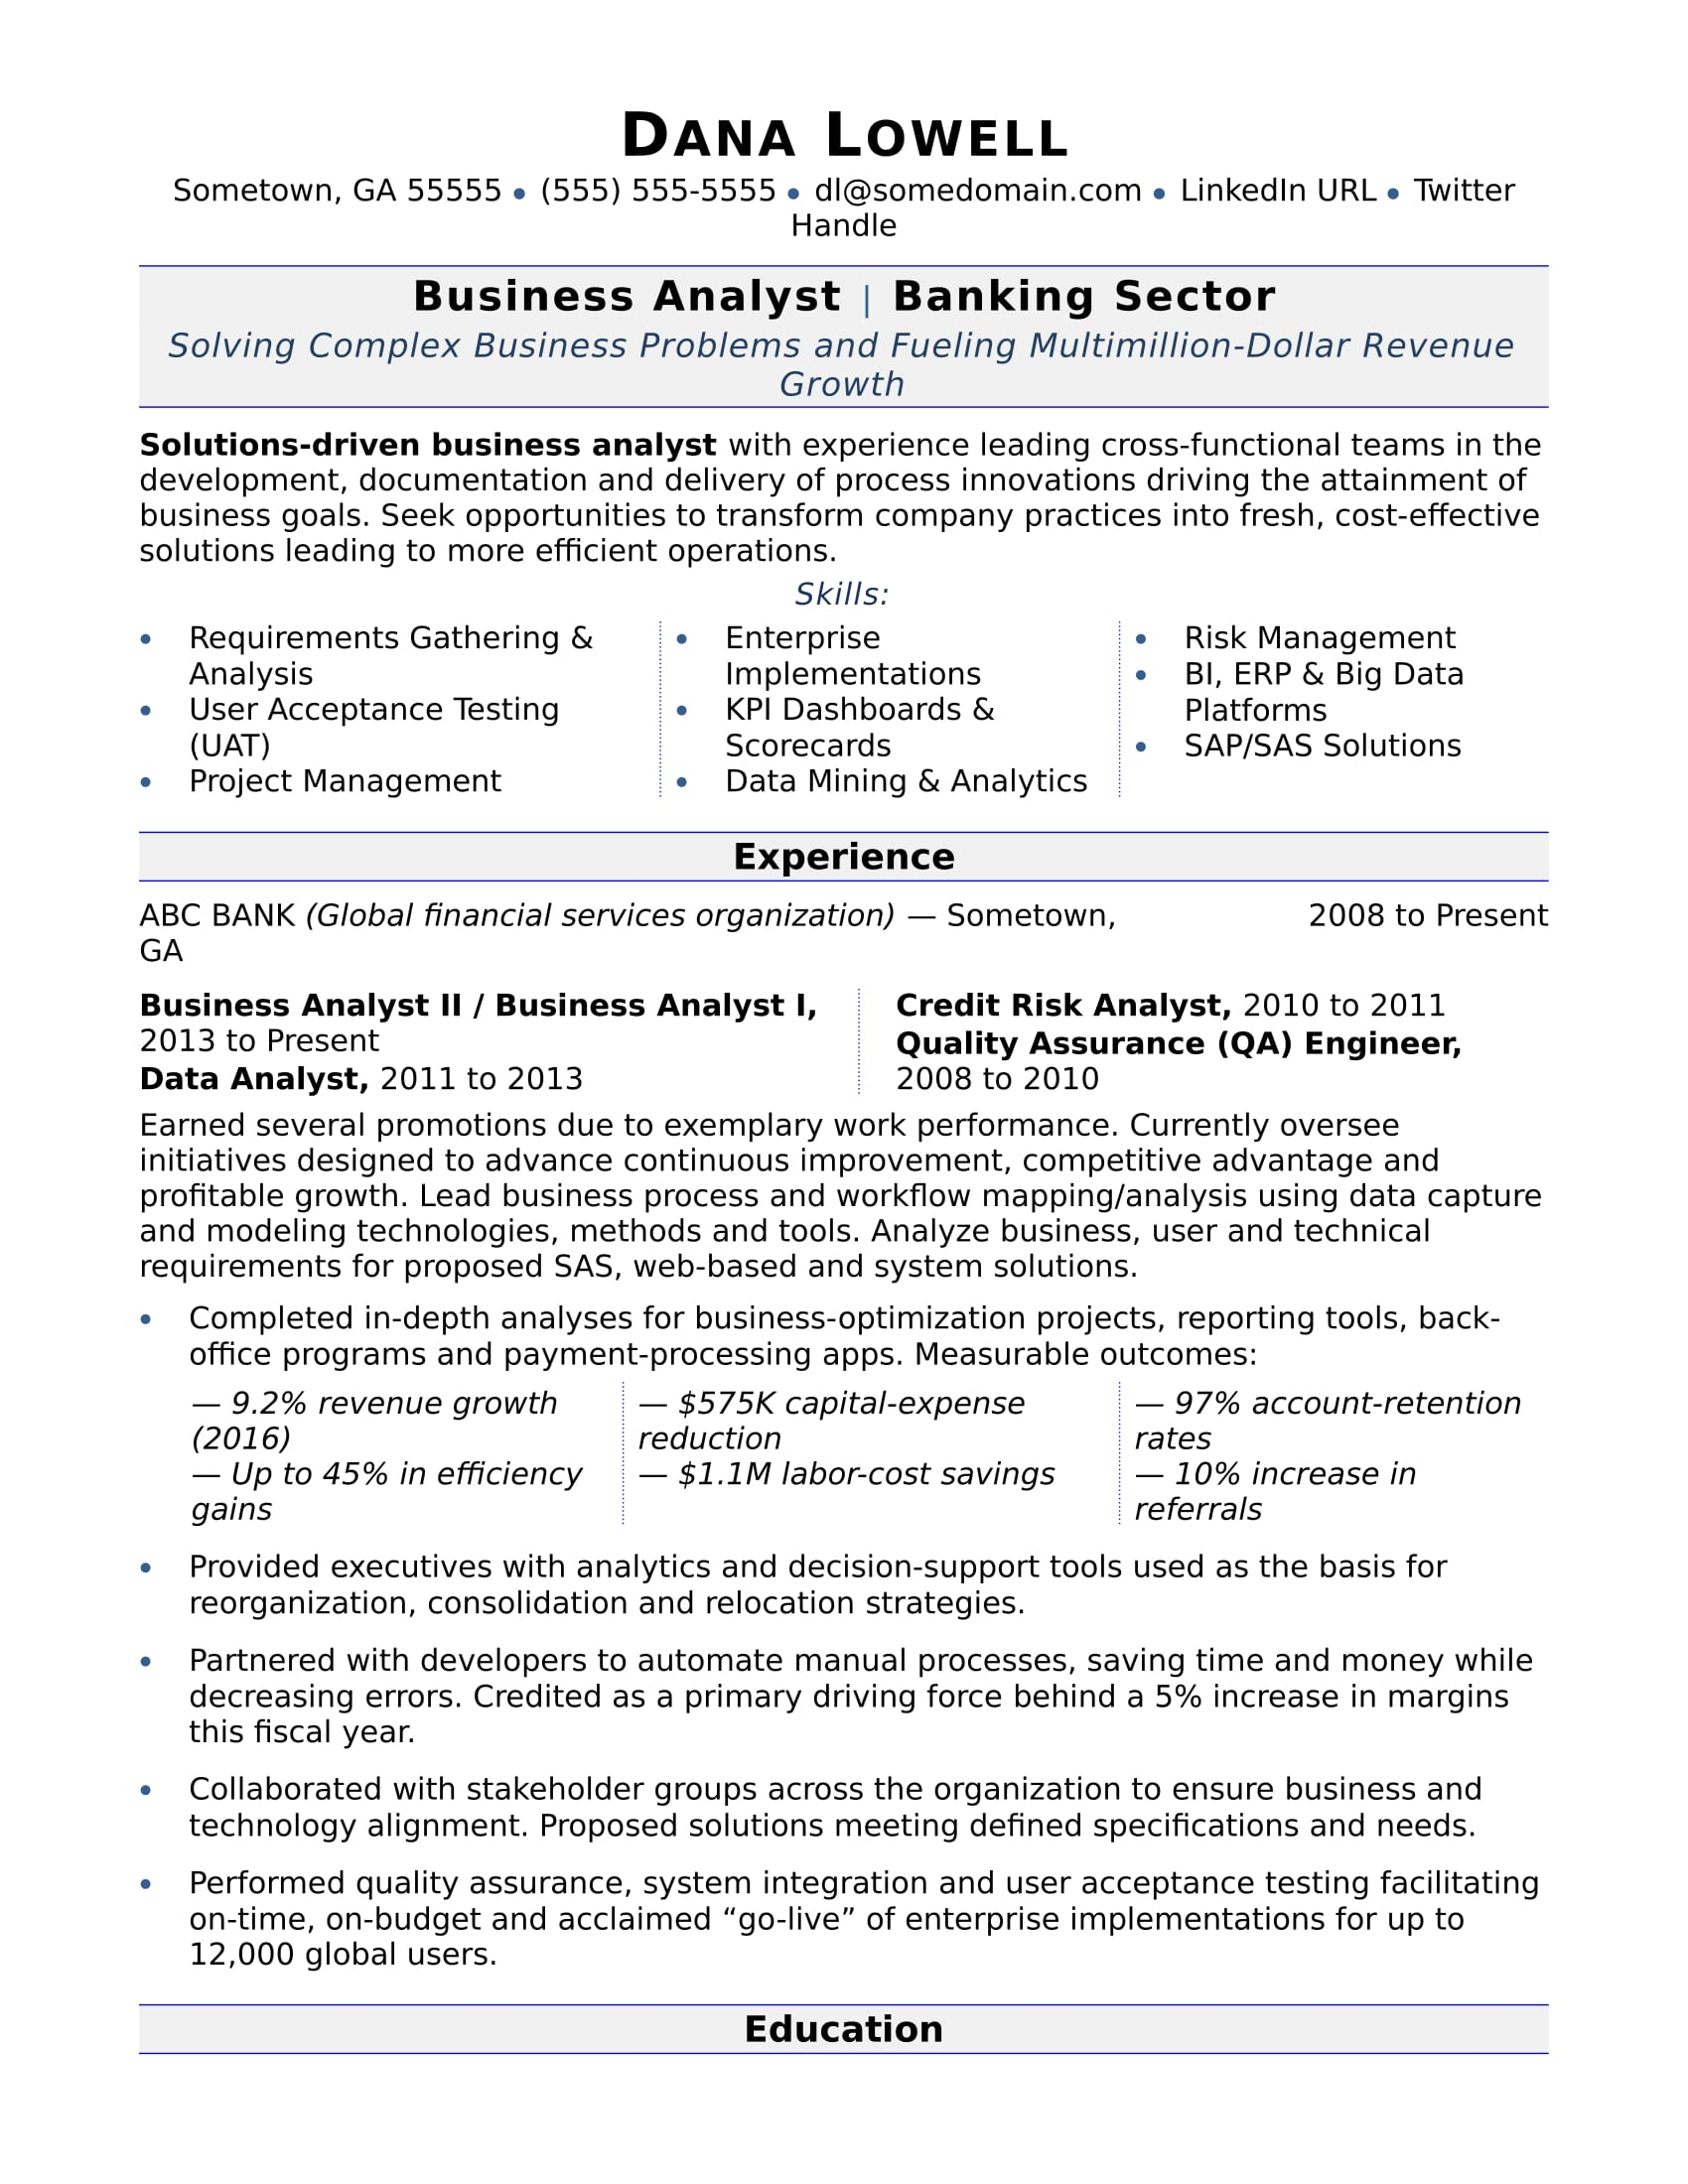 business analyst resume sample - Resume Templates Business